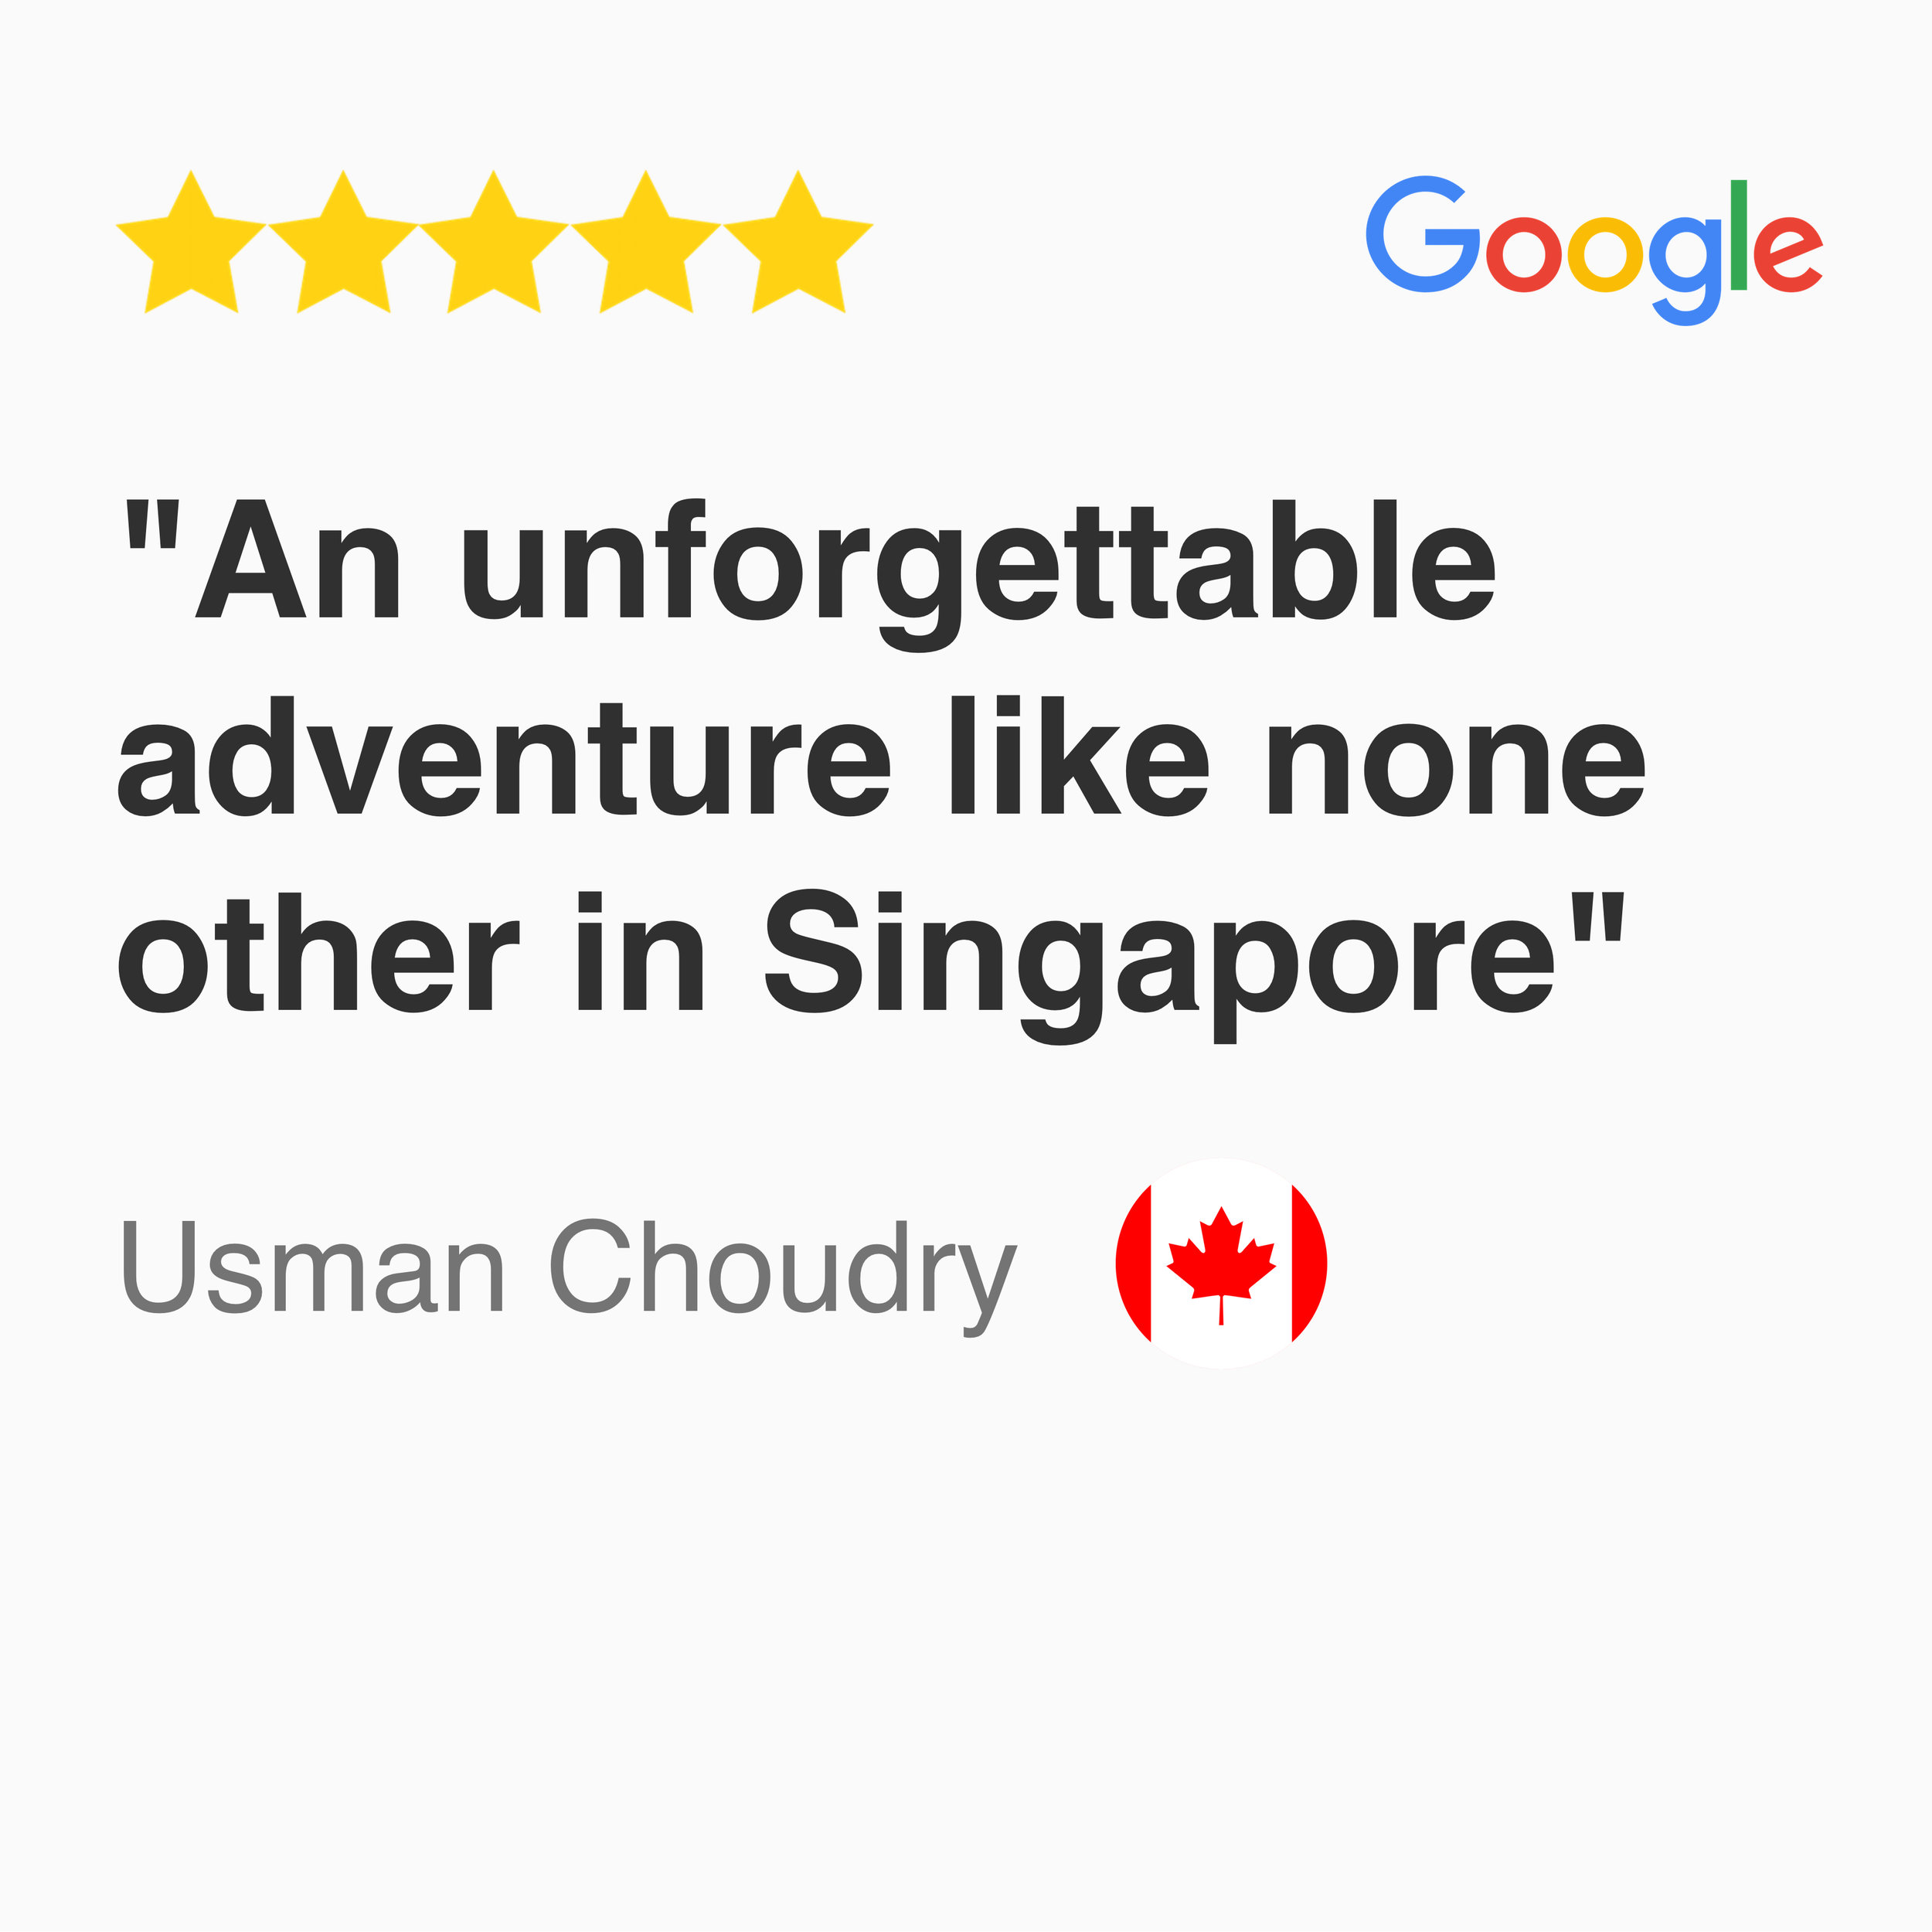 Google Review for kayak fishing tour Singapore: an unforgettable adventure like none other in Singapore